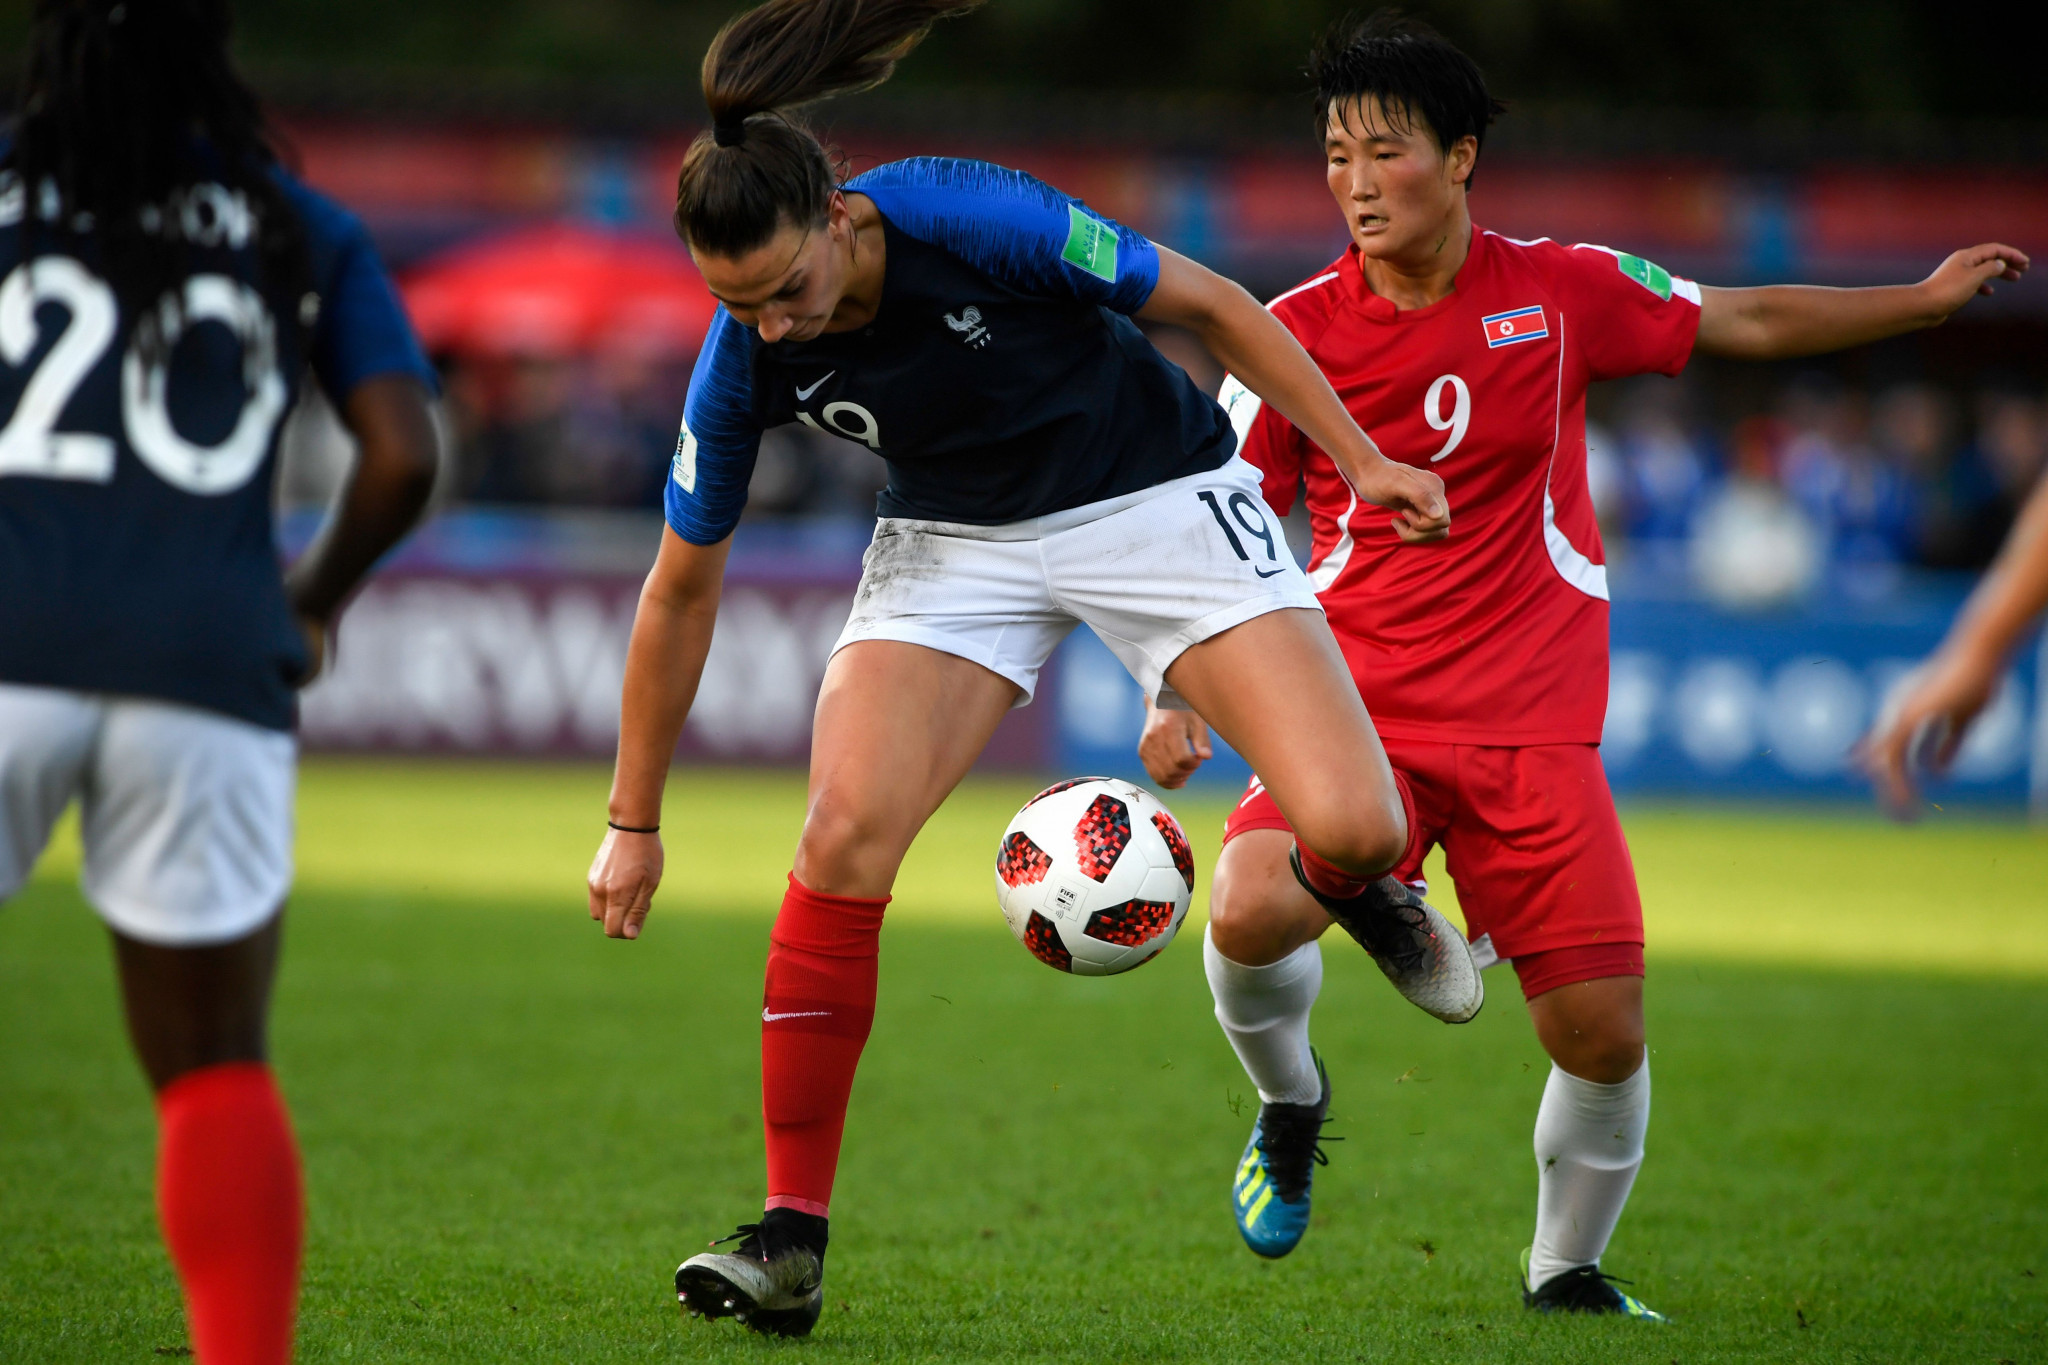 France reach FIFA Under-20 Women's World Cup semi-finals with victory over defending champions